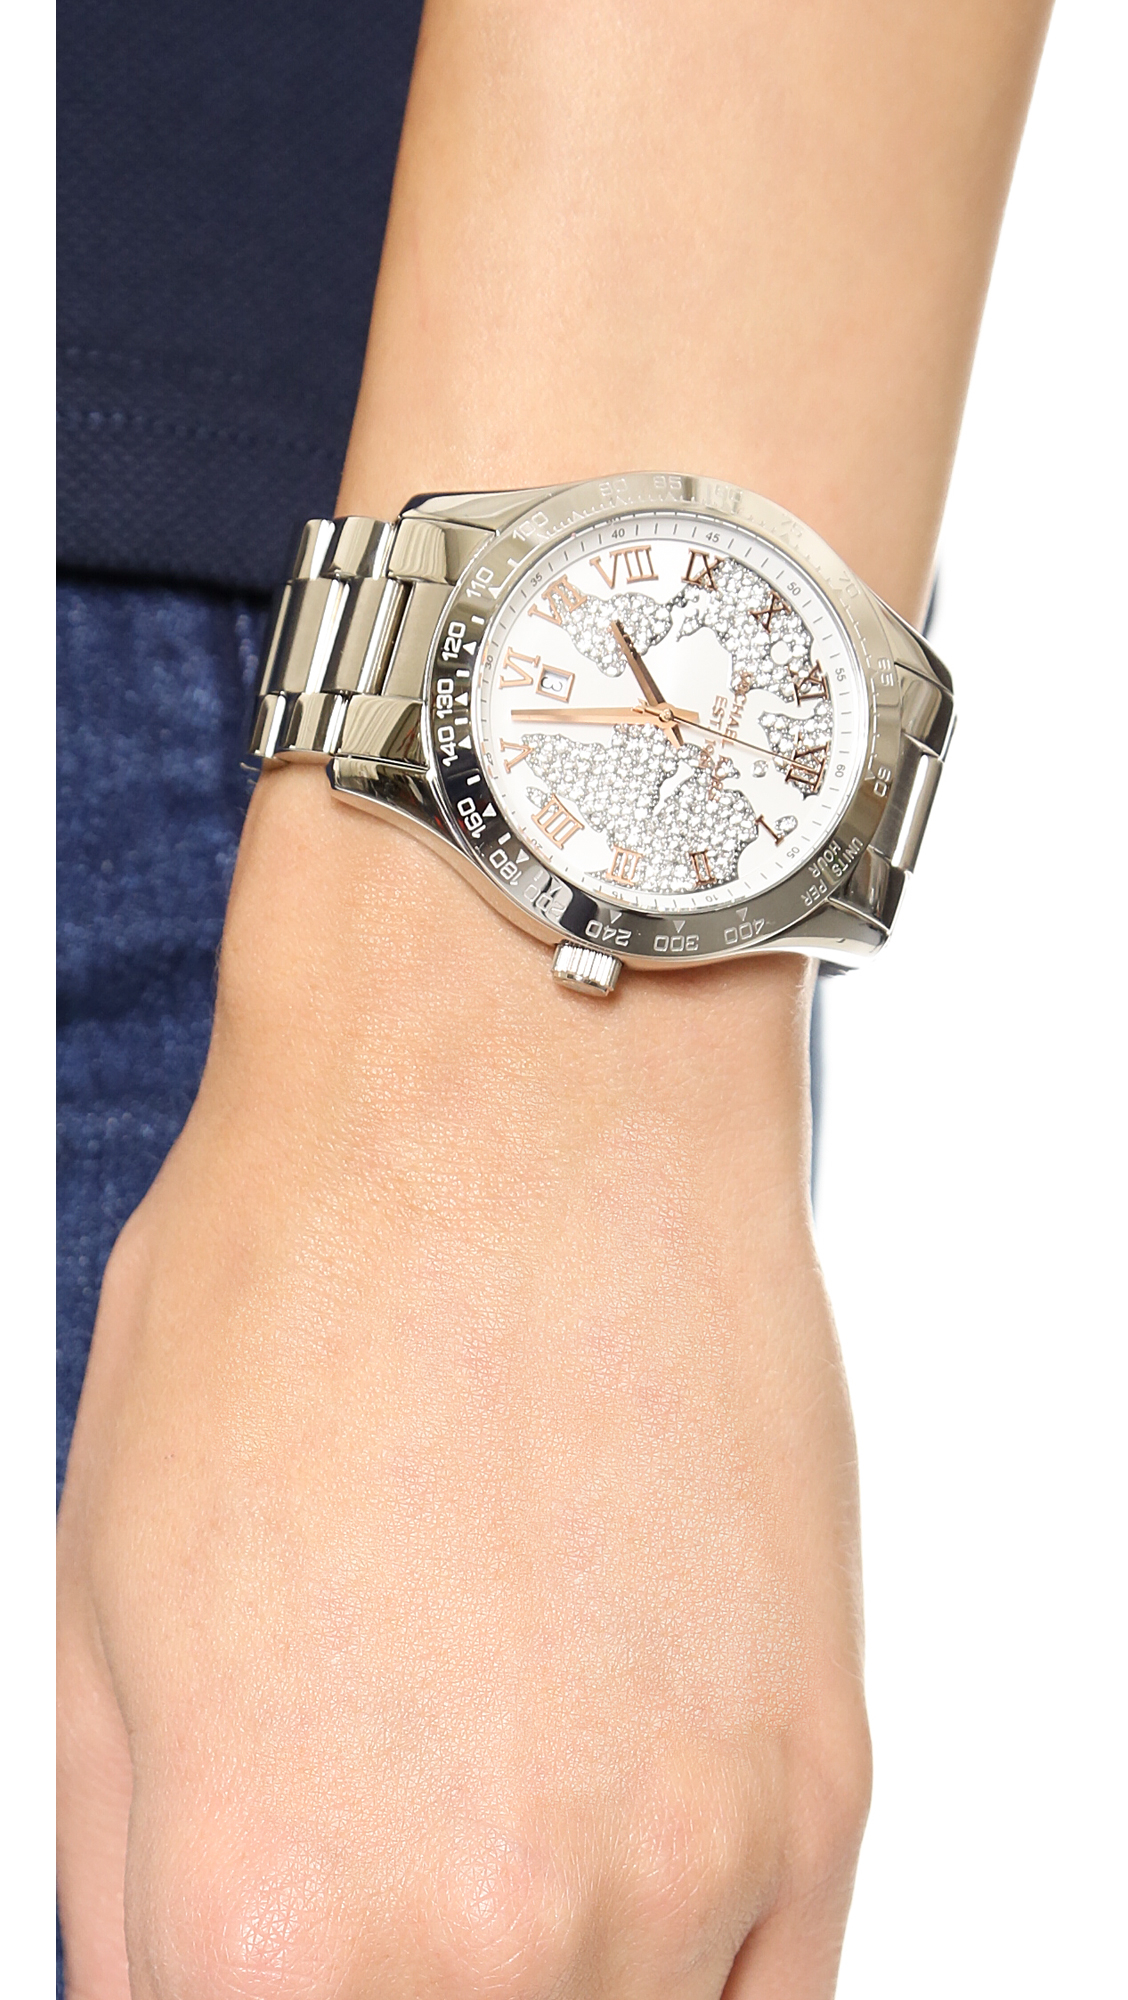 Lyst michael kors global glam layton watch silver in metallic gallery gumiabroncs Images